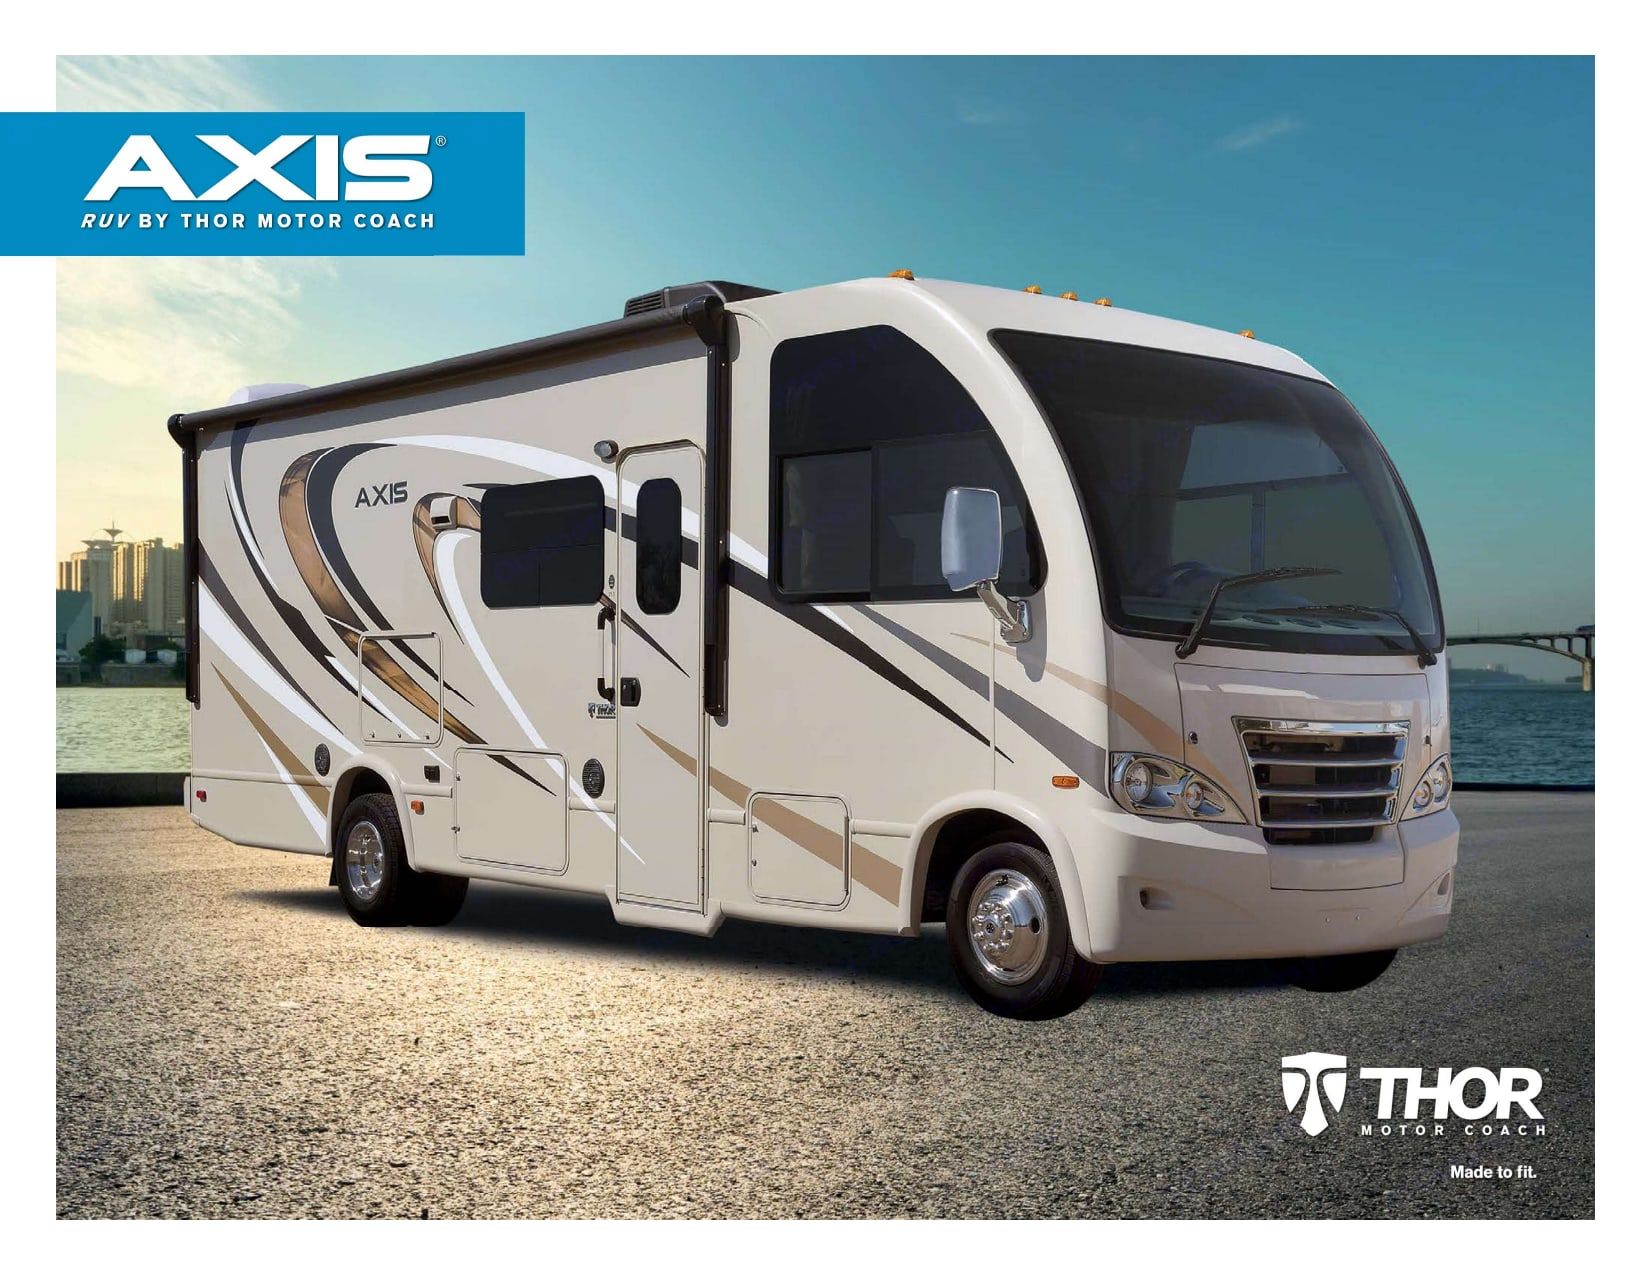 """ONLY PAY FOR WHAT YOU NEED & USE IN DAYS, MILES, GEN__ customize your use__ NO CLEANING FEE_we """"do the cleaning"""" knowing clean_ NO DUMP FEE. Thor Motor Coach Axis 2017"""